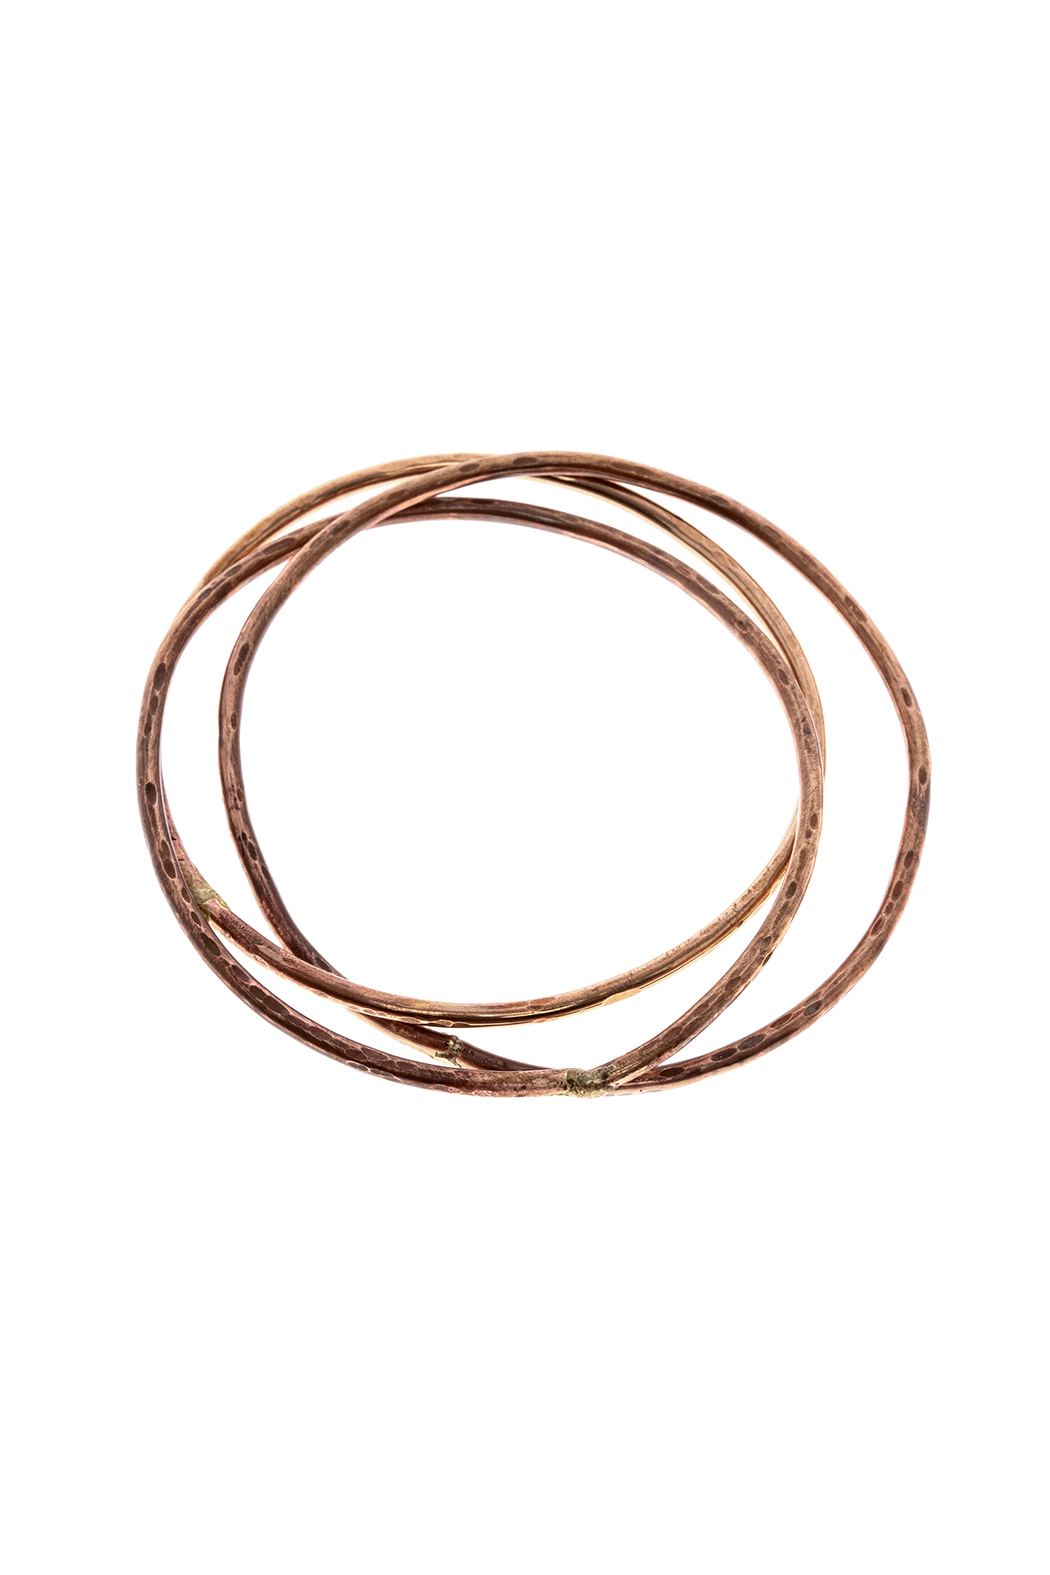 Cowgirl Chile Co. Jewelry Trois Bronze Bangles - Main Image